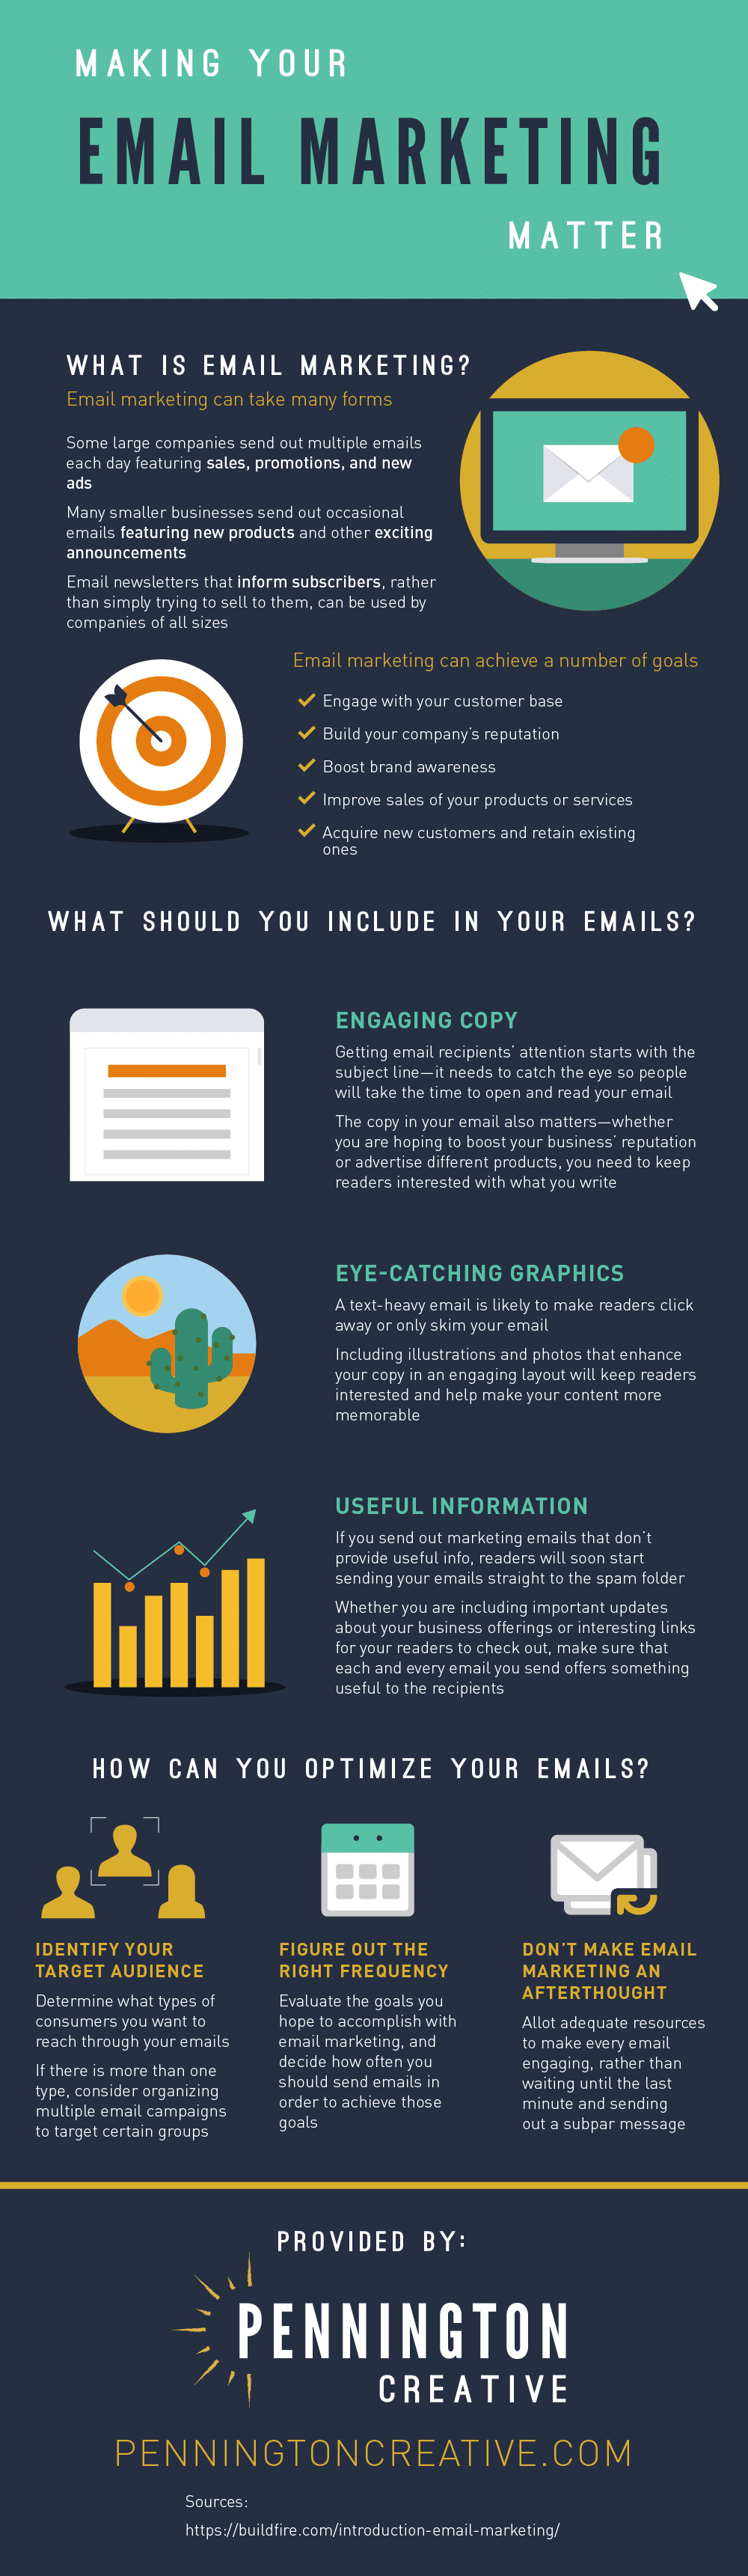 Infographic with tips for email marketing.